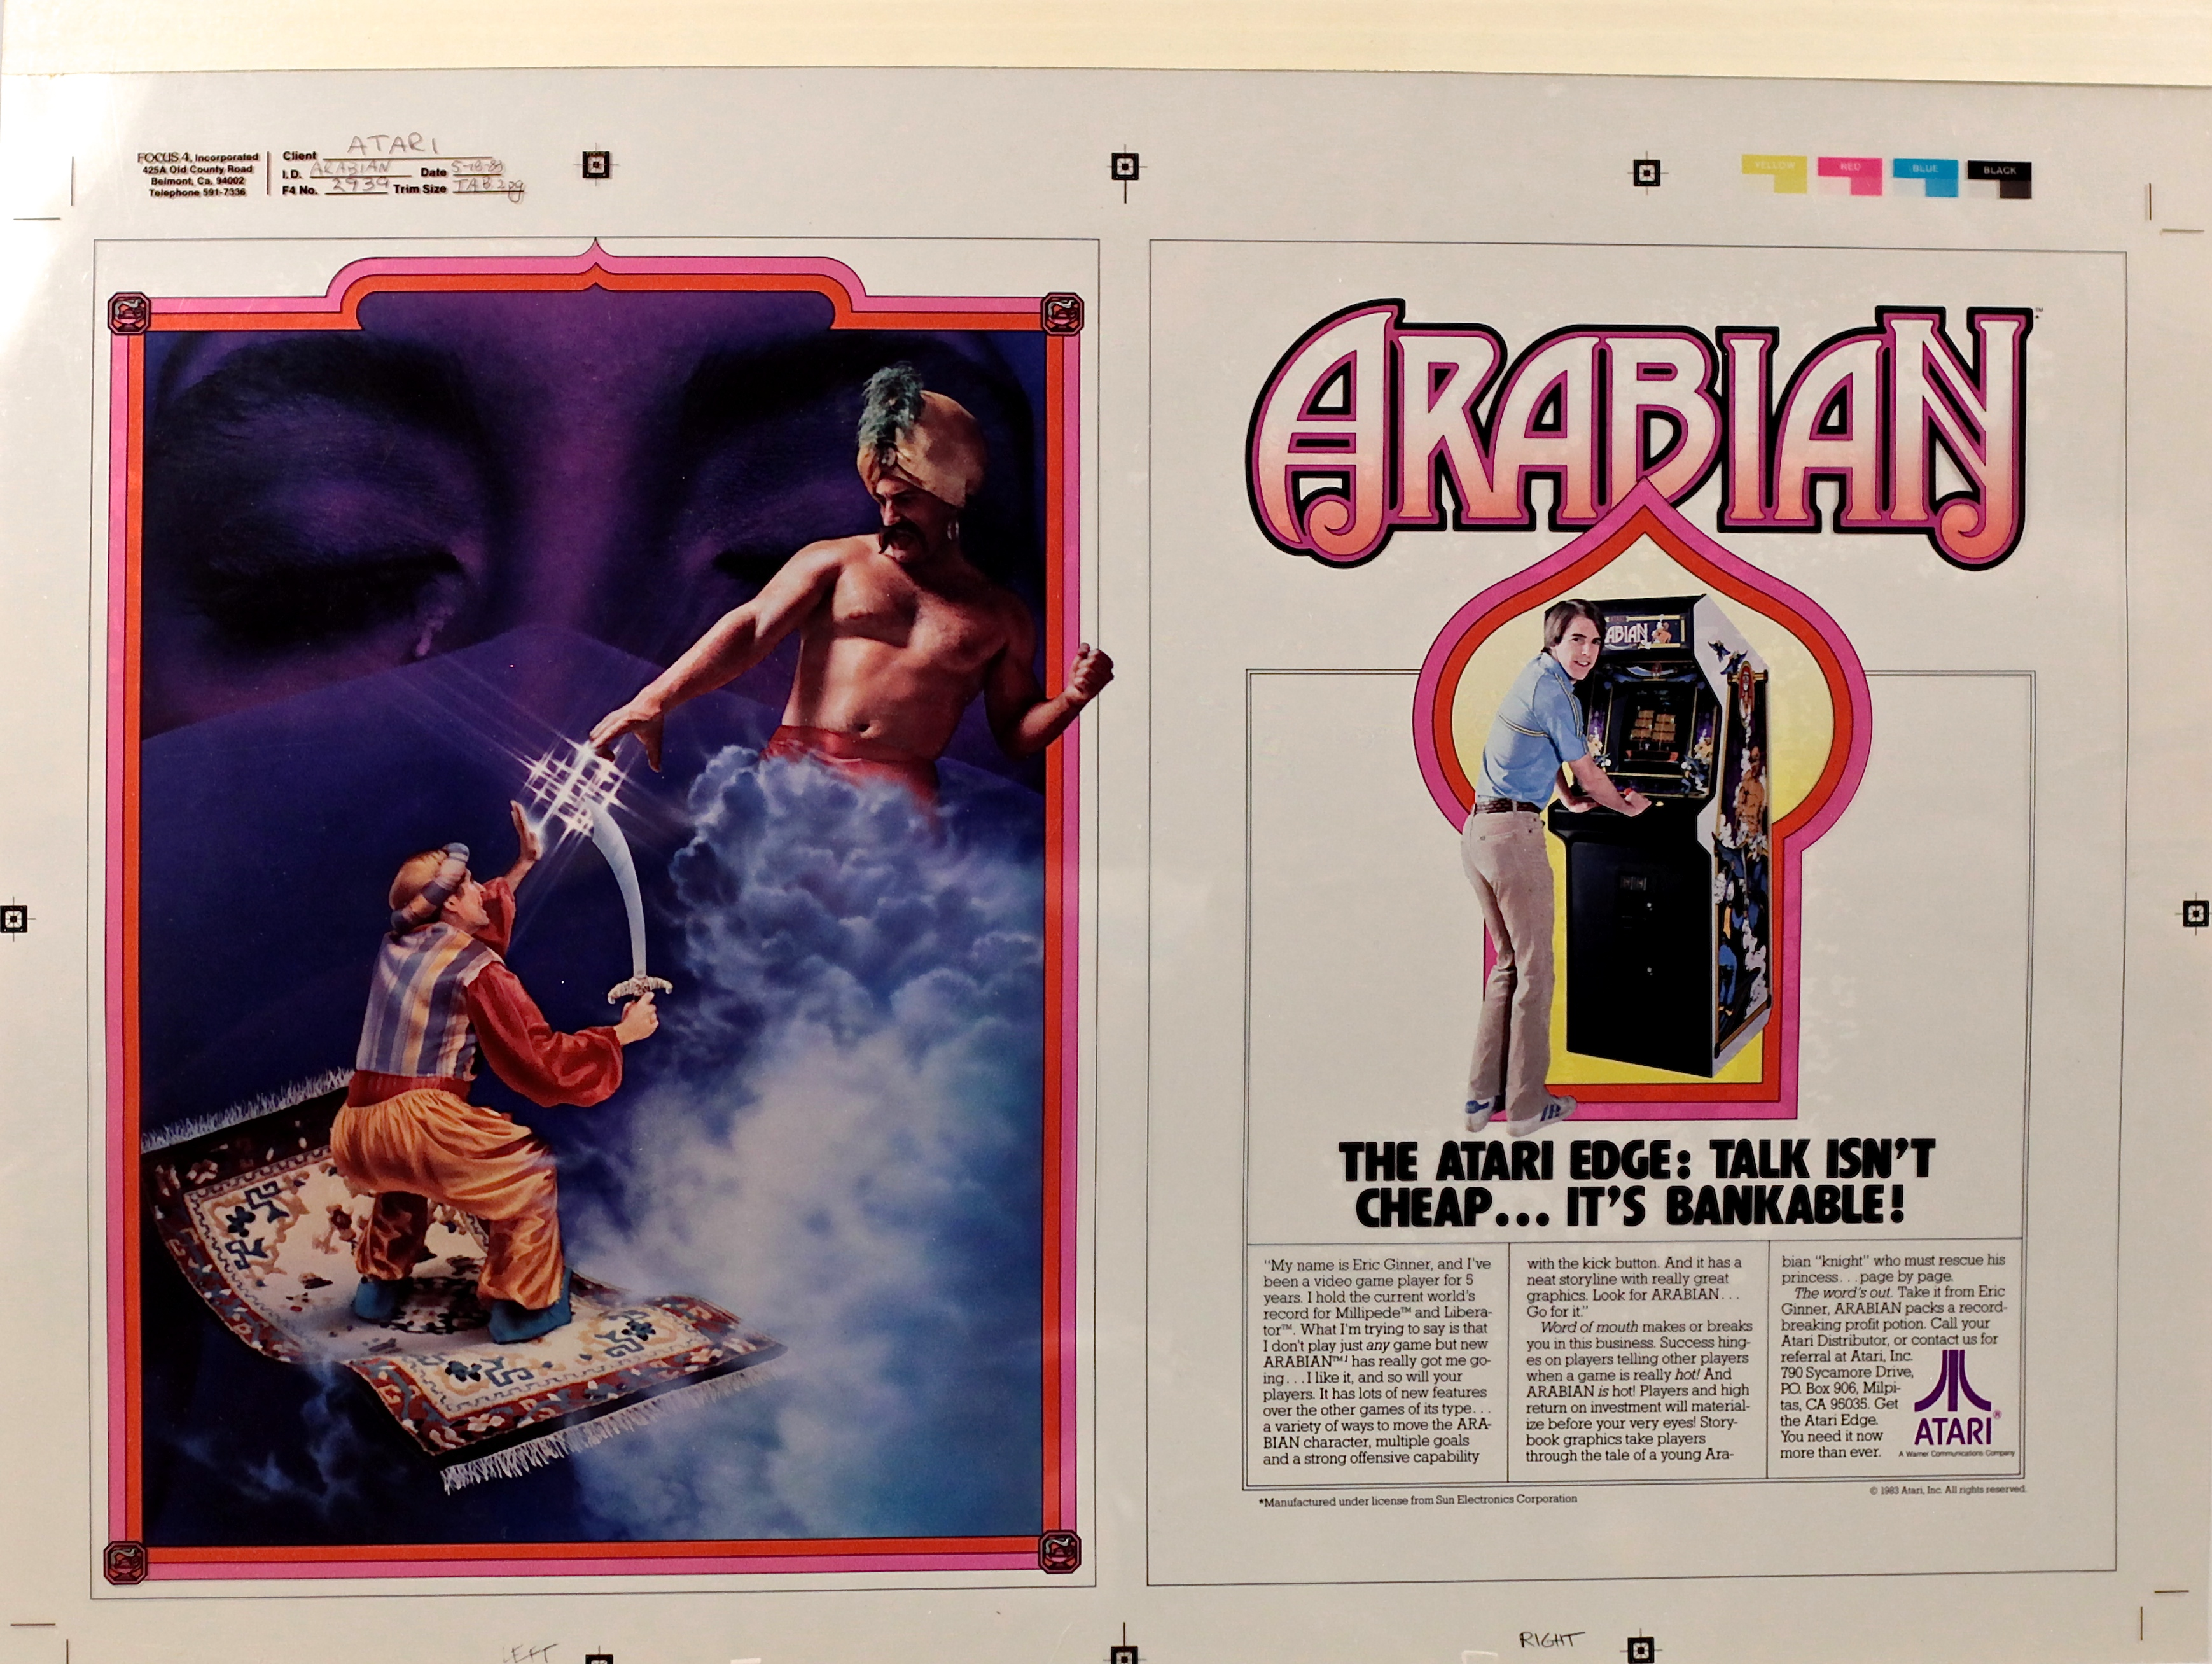 Advertising-Proof-for-Atari's-Arabian-Arcade-Video-Game-Courtesy-of-The-Strong-Rochester-NY.